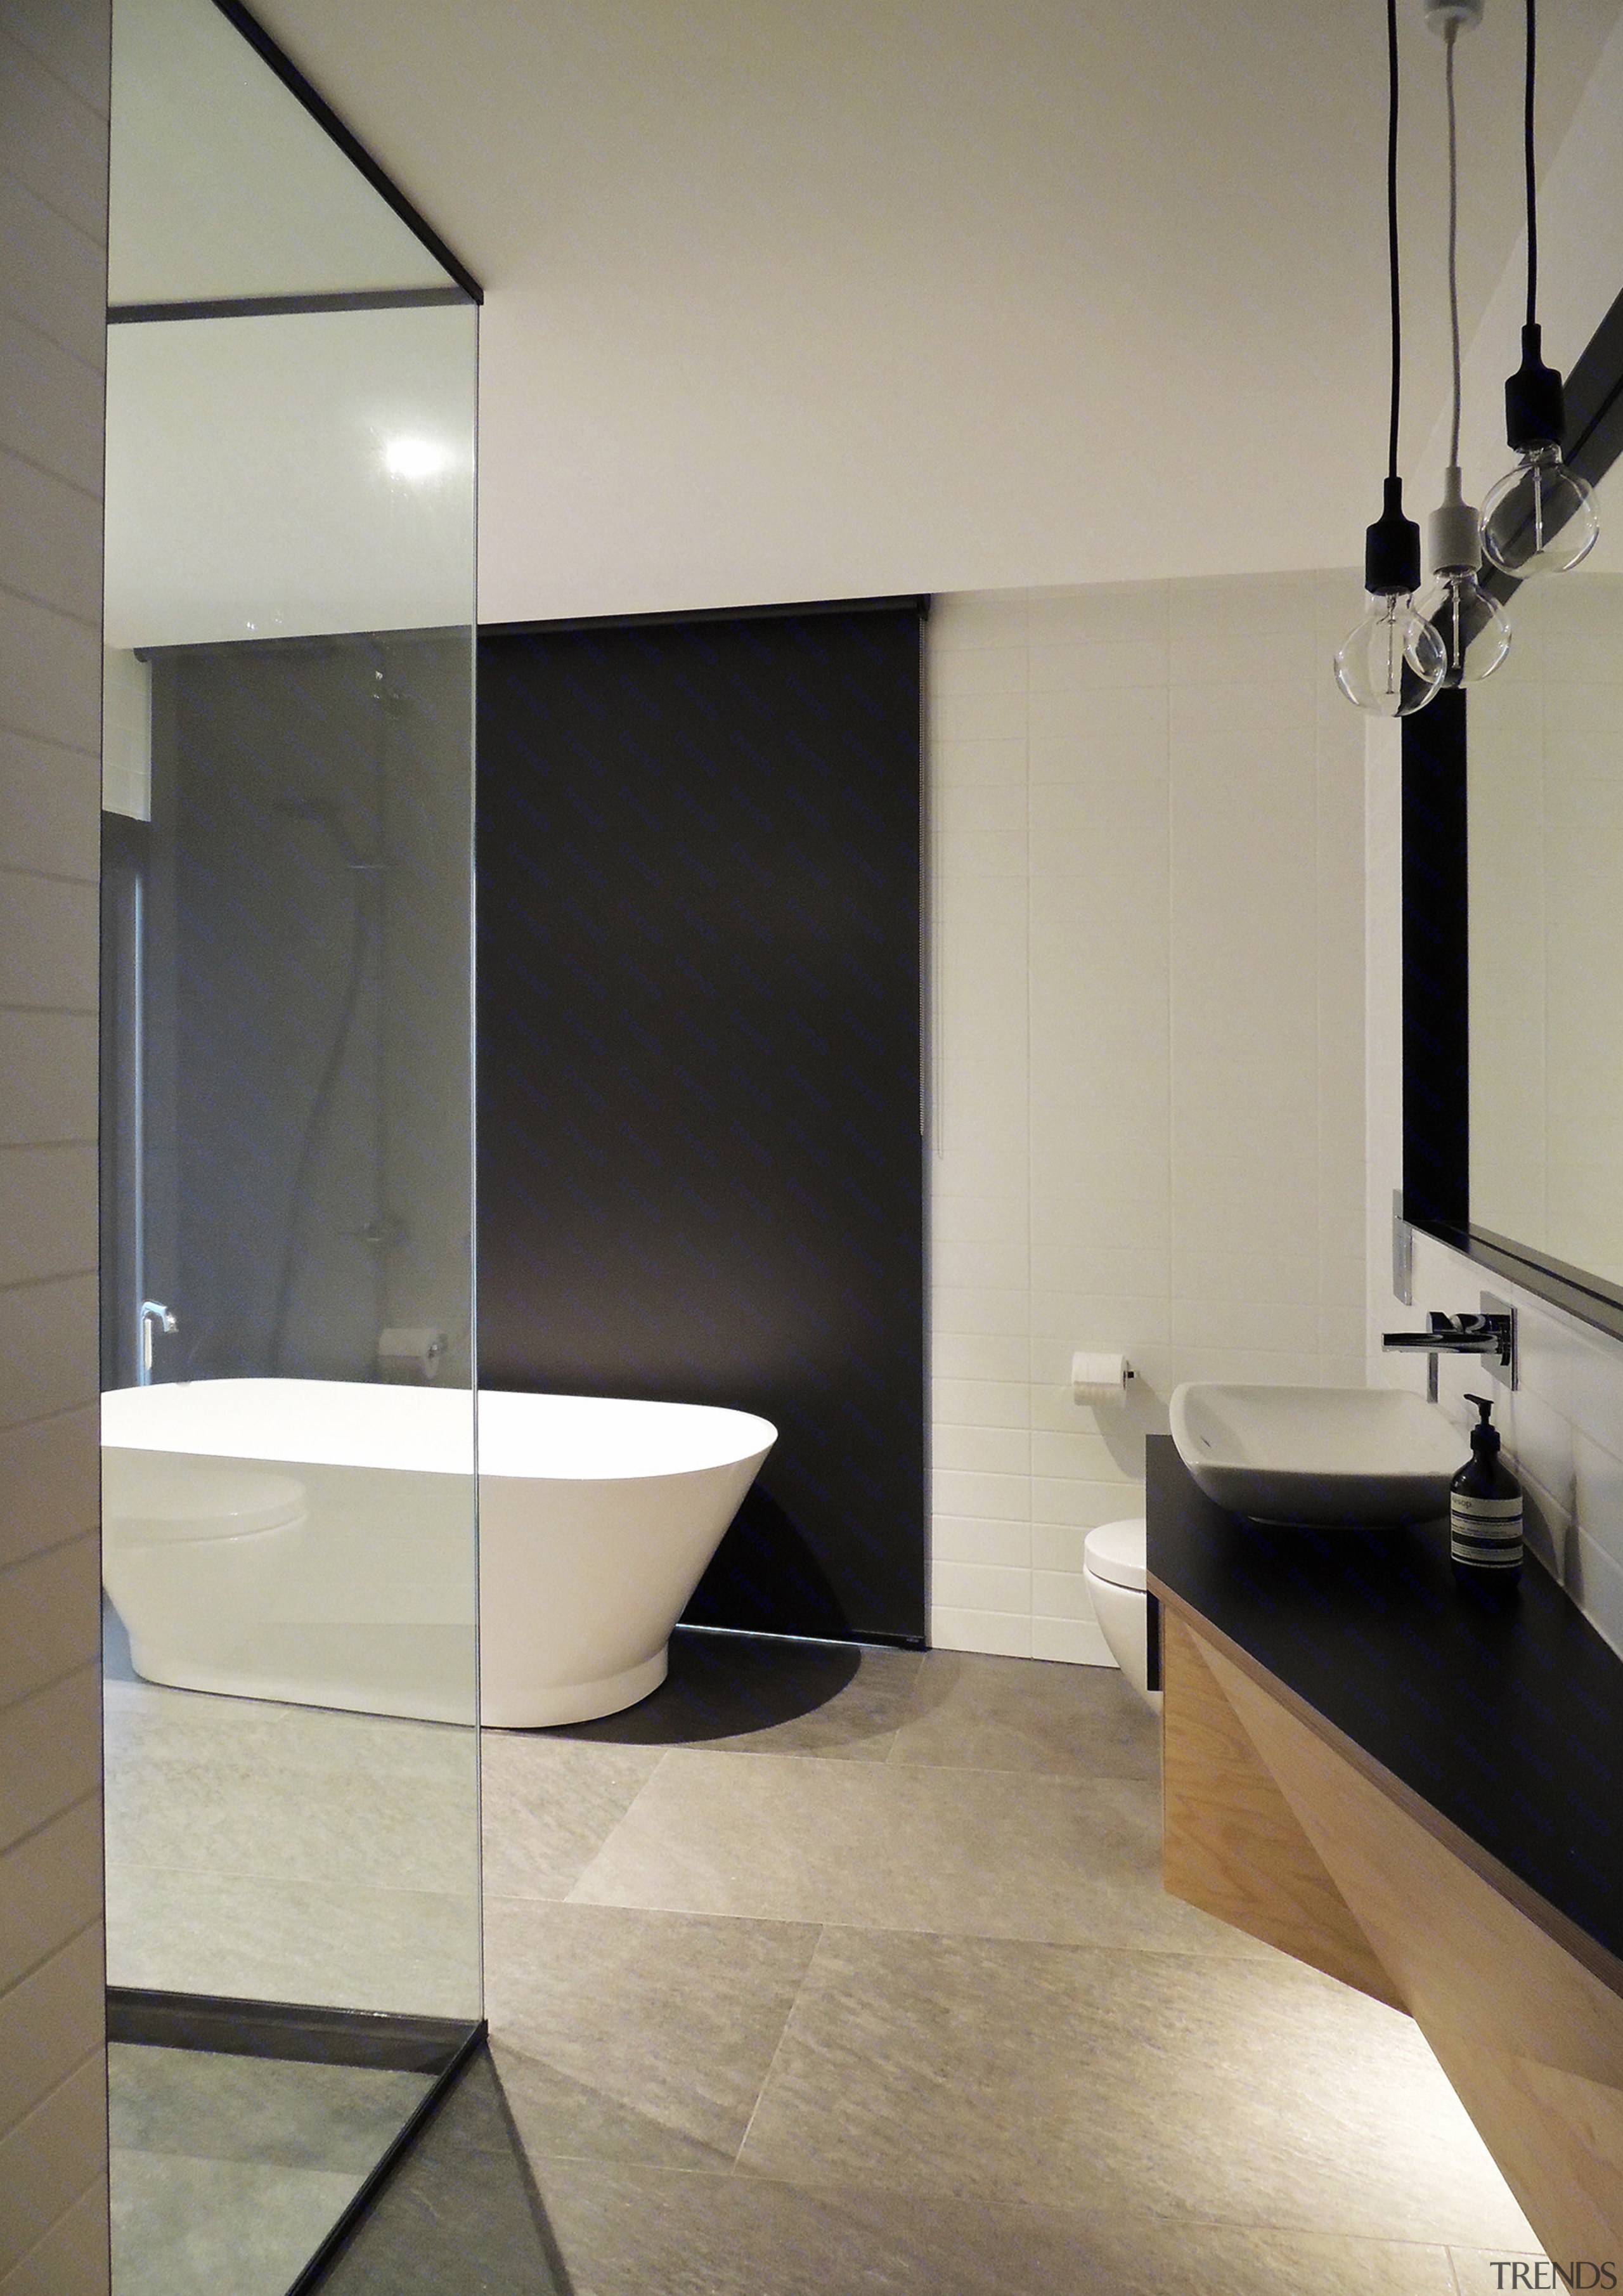 A Freestanding Tub And A Floor To Ceiling Glass Shower Architecture, Bathroom,